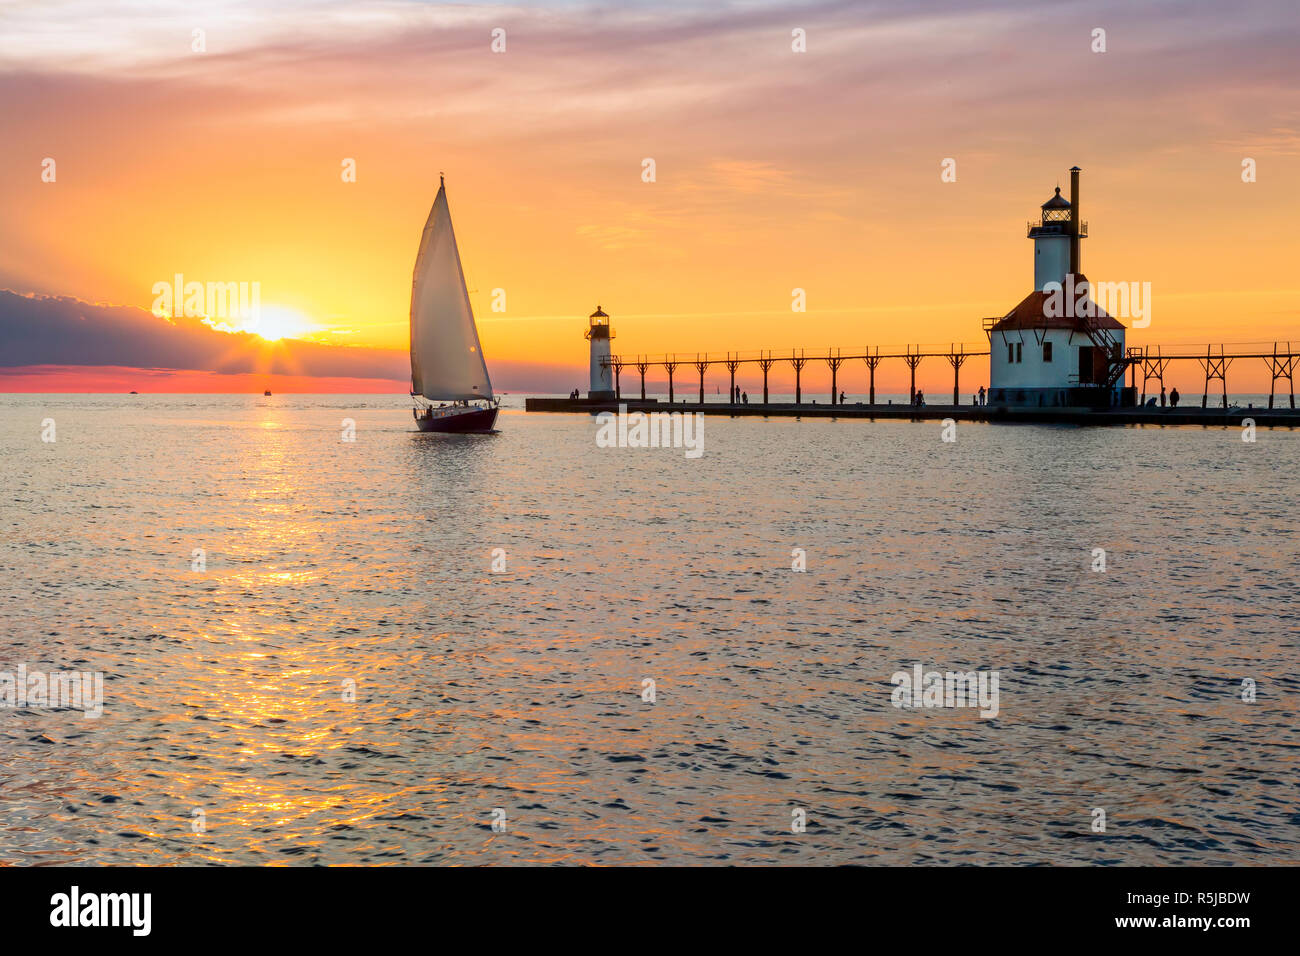 A sailboat rounds the breakwater near sunset on the longest day of the year by the Lighthouses at St. Joseph, Michigan with people fishing from and wa Stock Photo